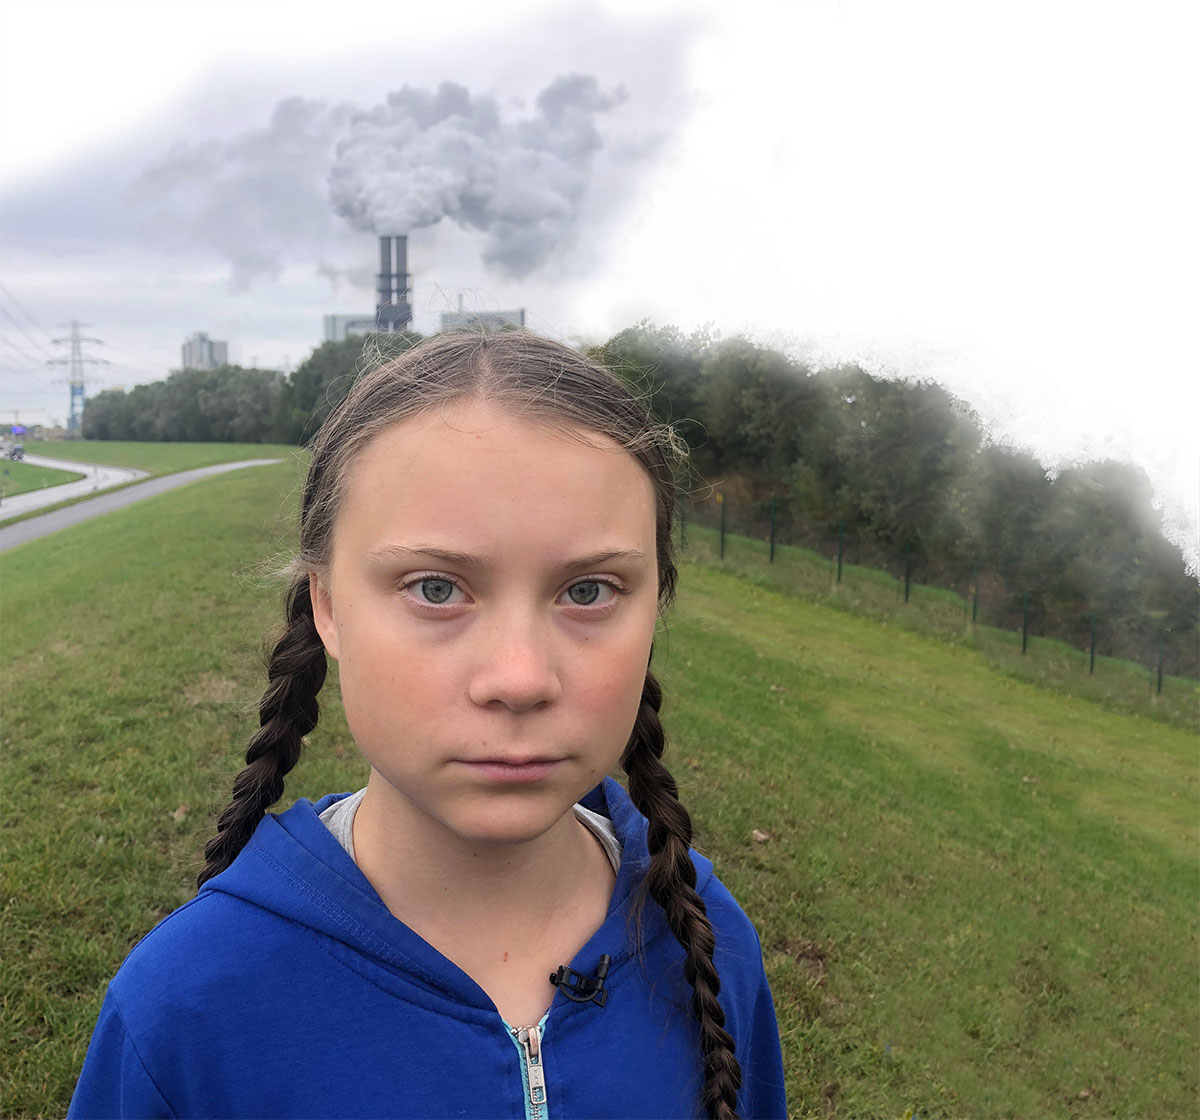 profile photo of Greta Thunberg